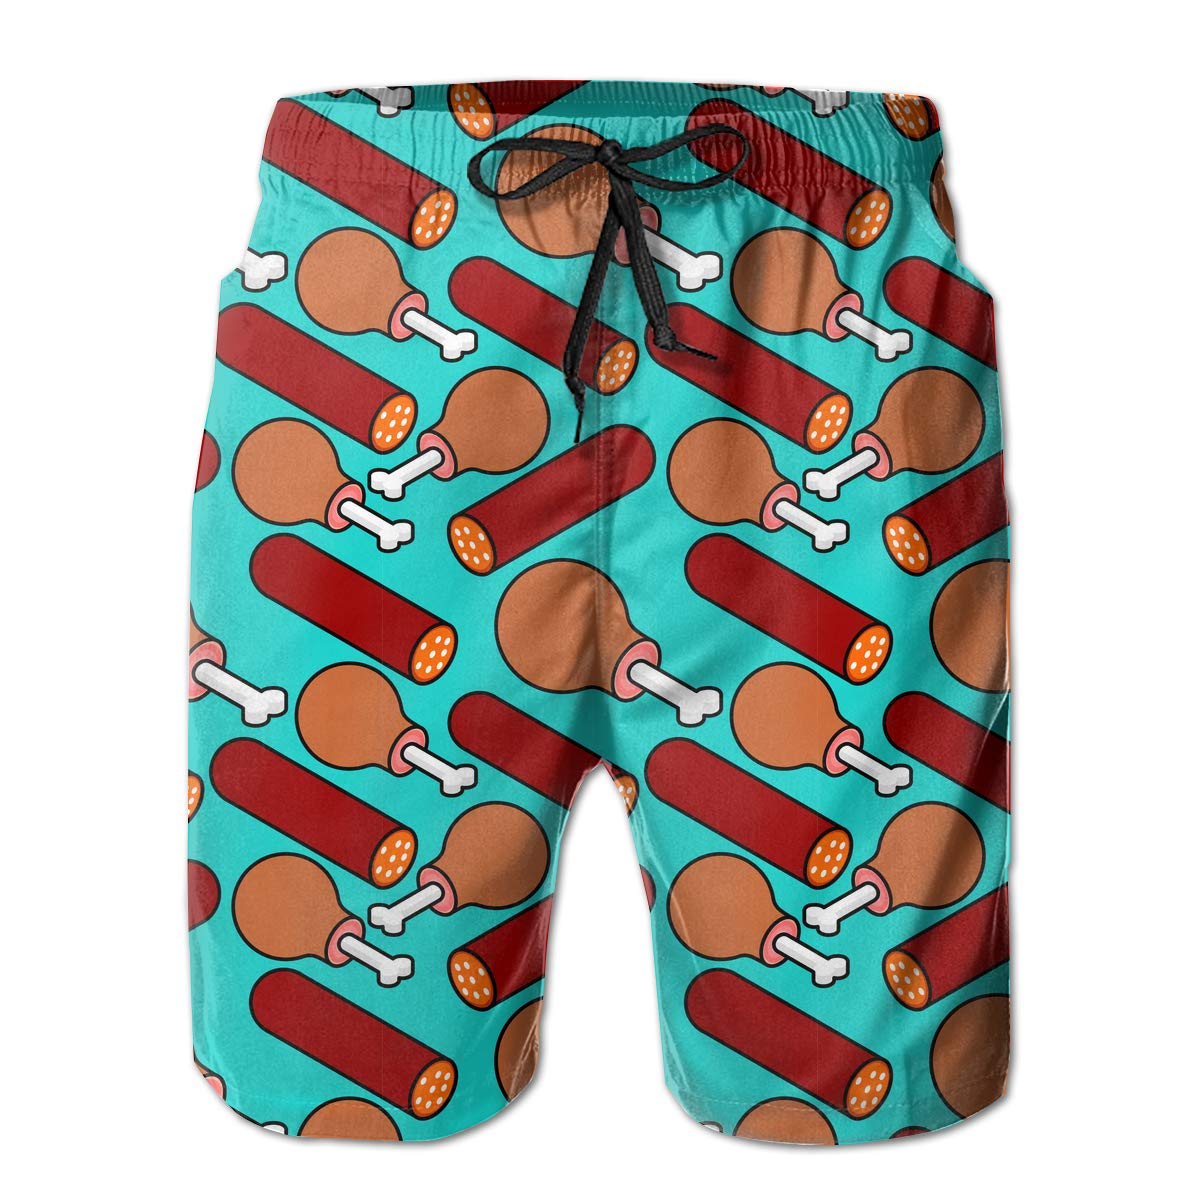 UHT28DG Piece of Beef and Sausage Pattern Mens Board//Beach Shorts Slim-Fit Swimming Shorts